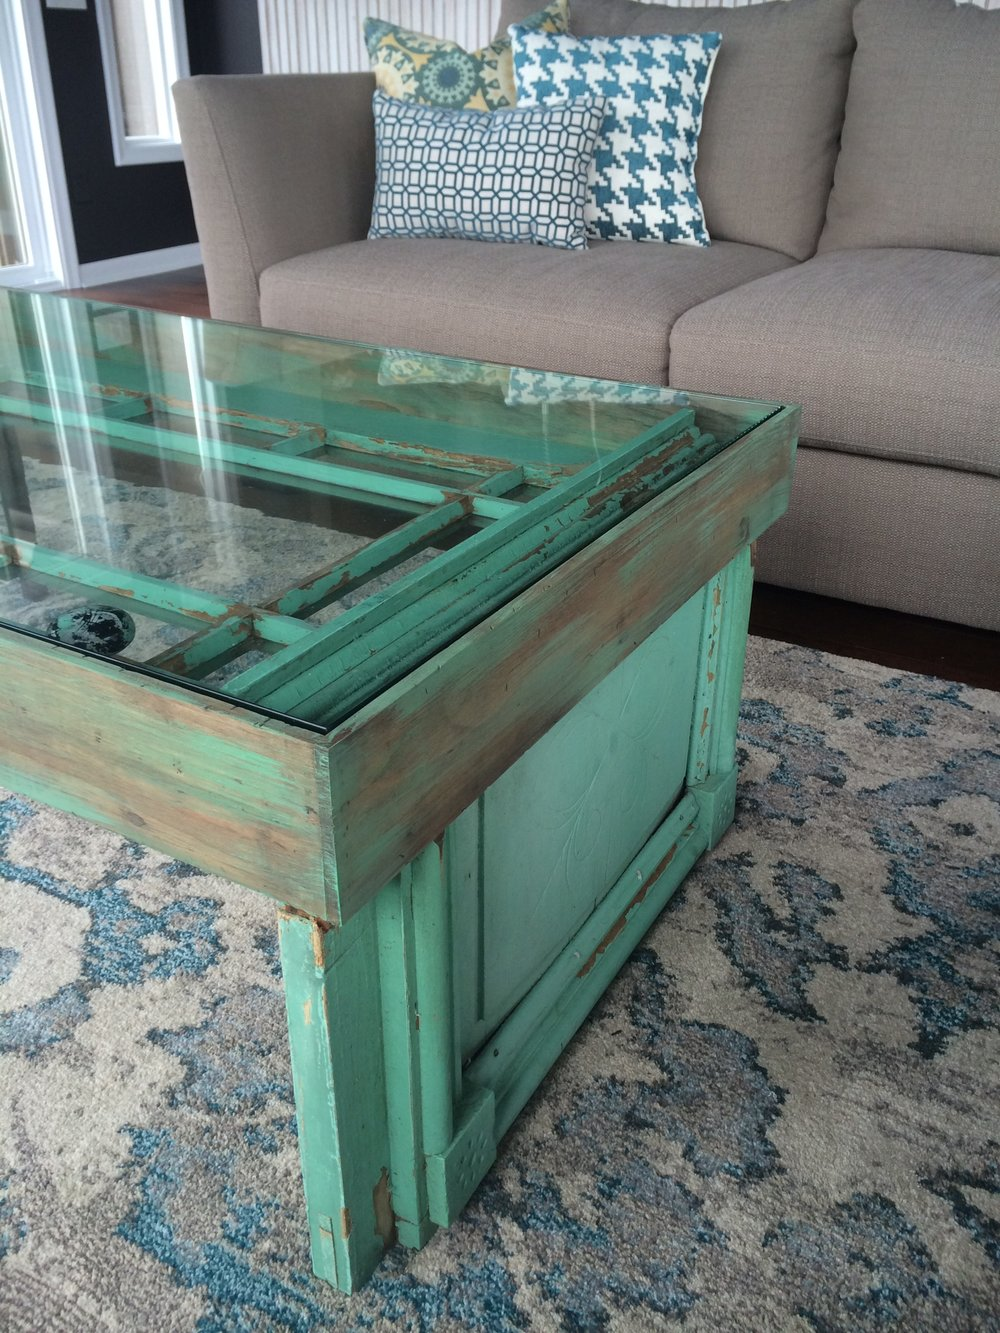 This old door that was hidden in the corner of the room, not only served as color inspiration for the sunroom but also was rebuilt by Cody into a coffee table.